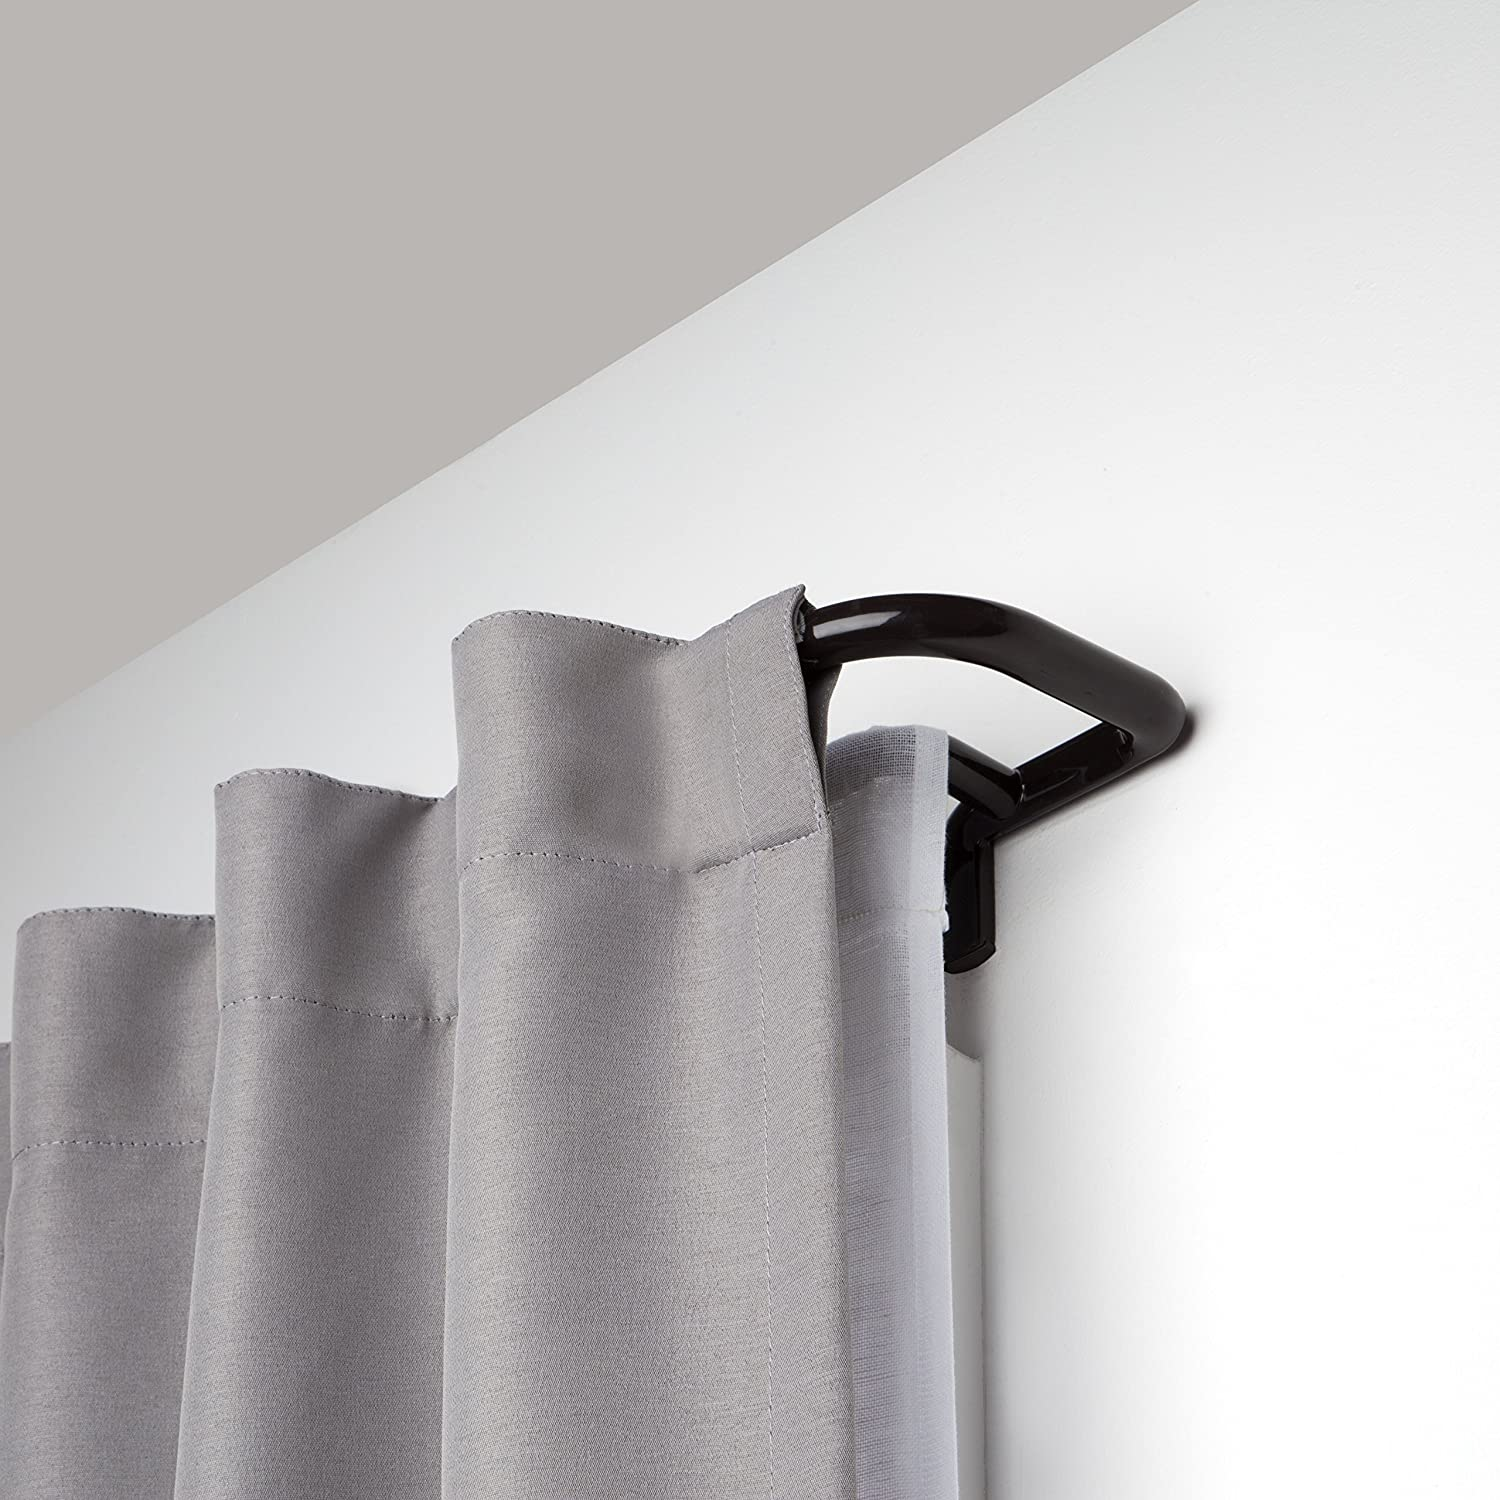 Umbra Twilight Double Curtain Rod Set – Wrap Around Design is Ideal for Blackout Curtains or Room Darkening Curtains, 28 to 48 Inch, Auburn Bronze 1005799-797-REM